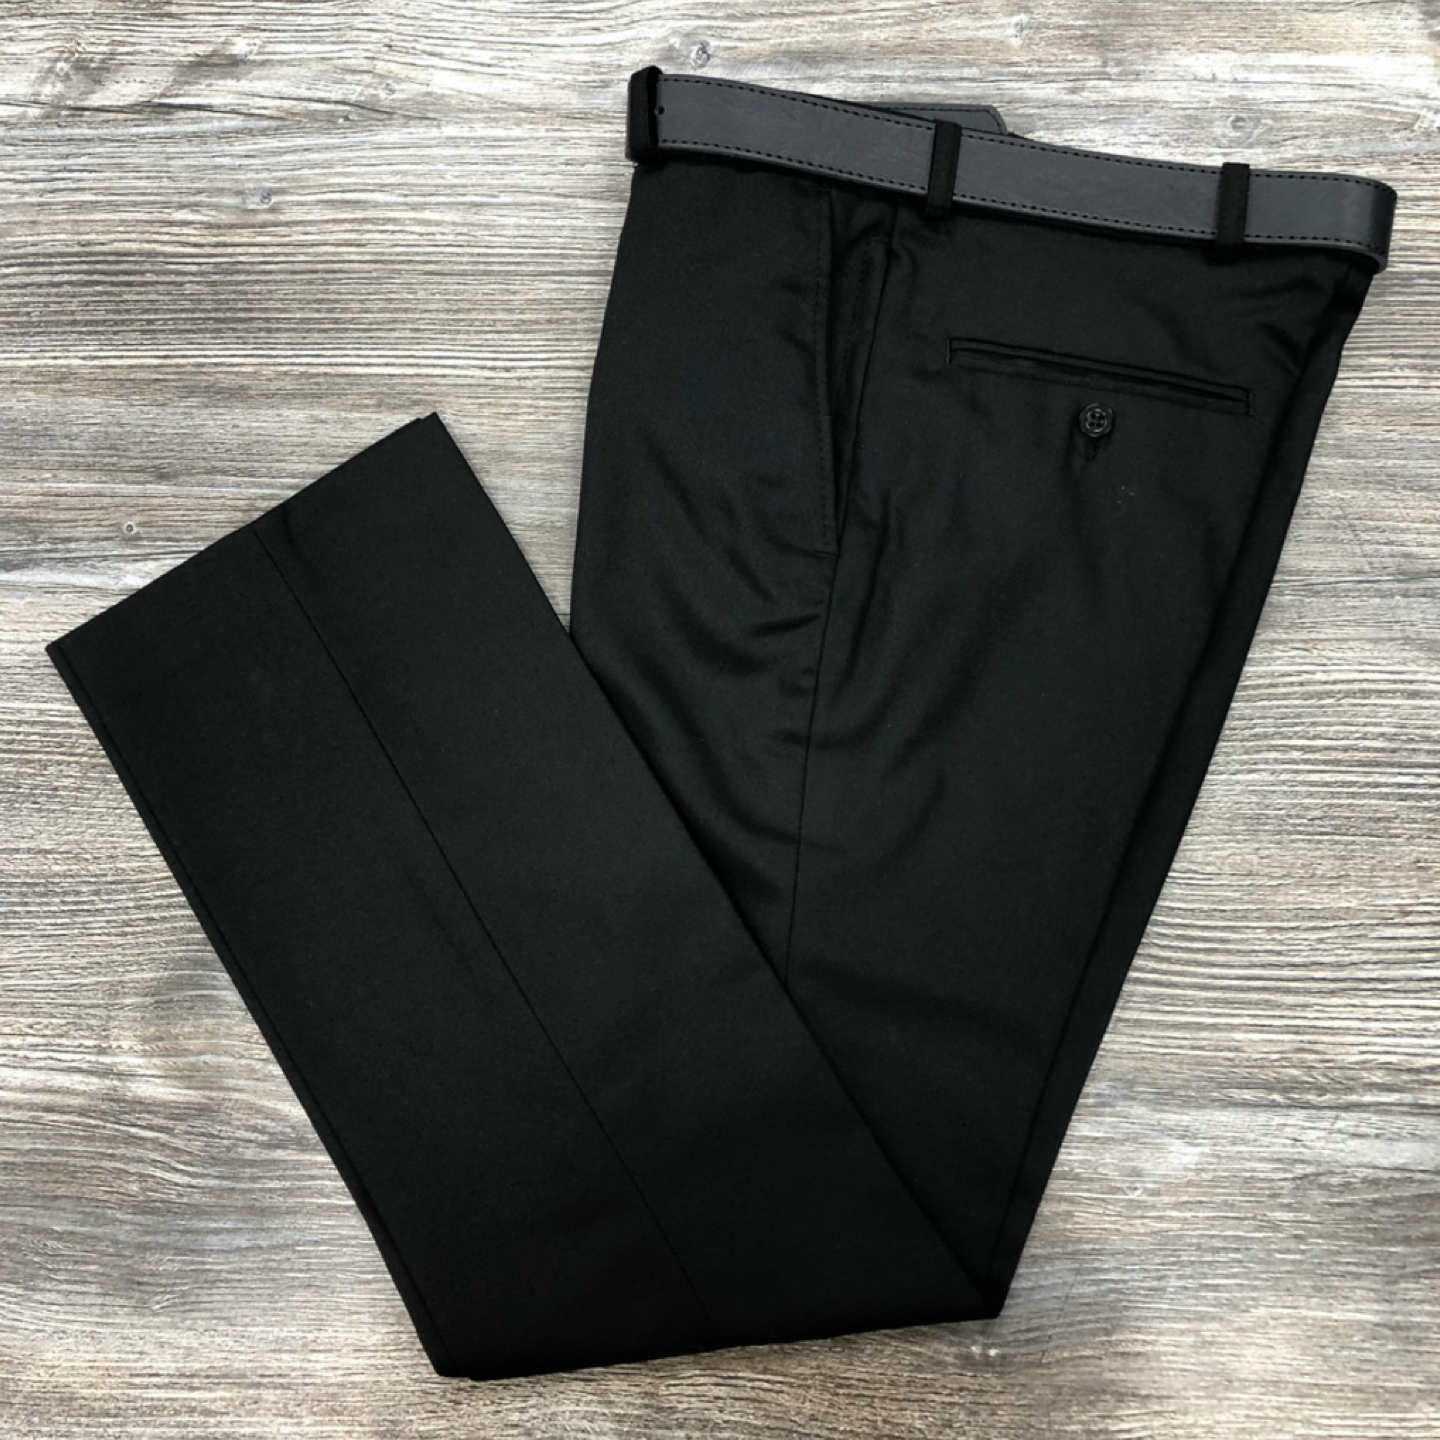 David Luke Black Senior Trousers